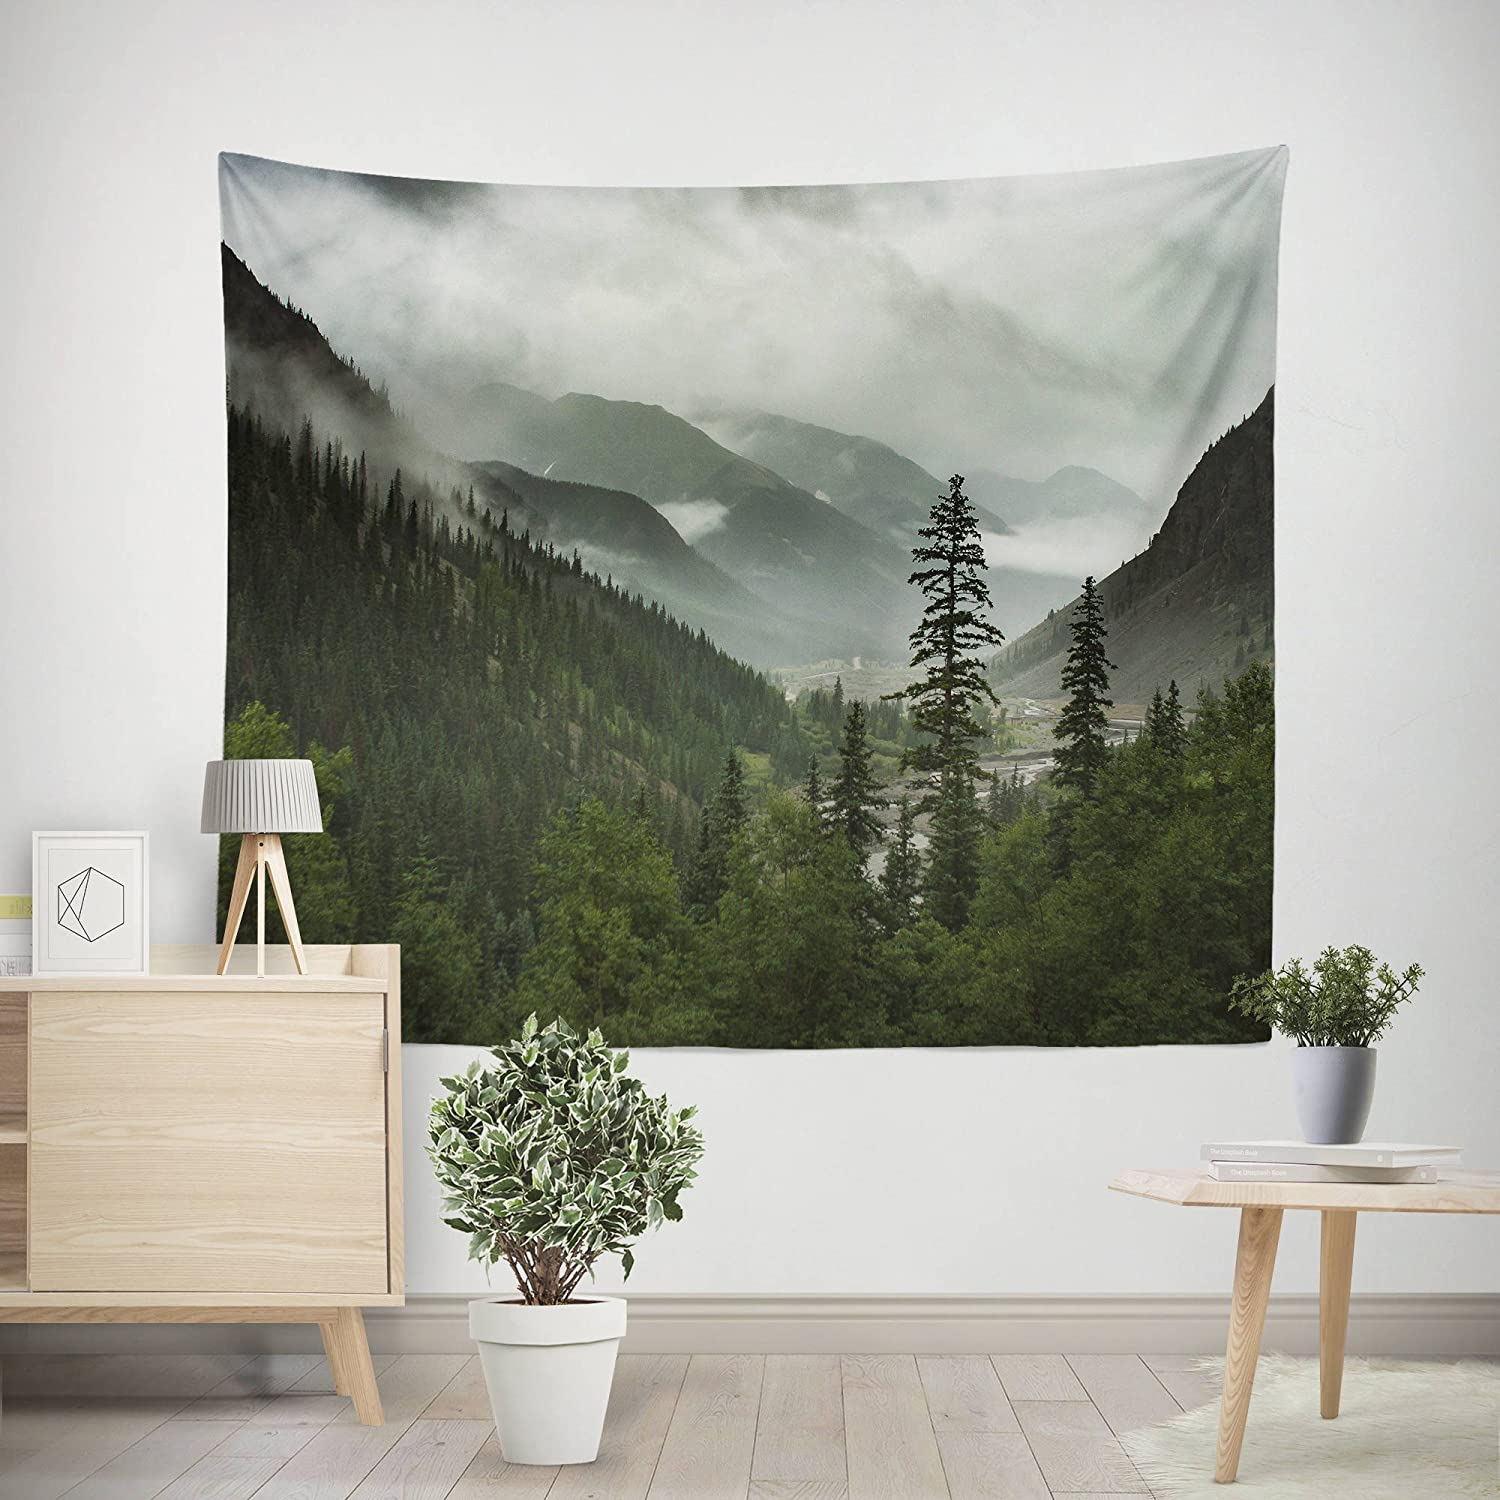 Mountains Wall Tapestry, Mountain Range, Rocky Mountain Decor, Mountain Landscape, Foggy Forest, Trees, Pine Forest Tapestry, Wilderness, Wanderlust